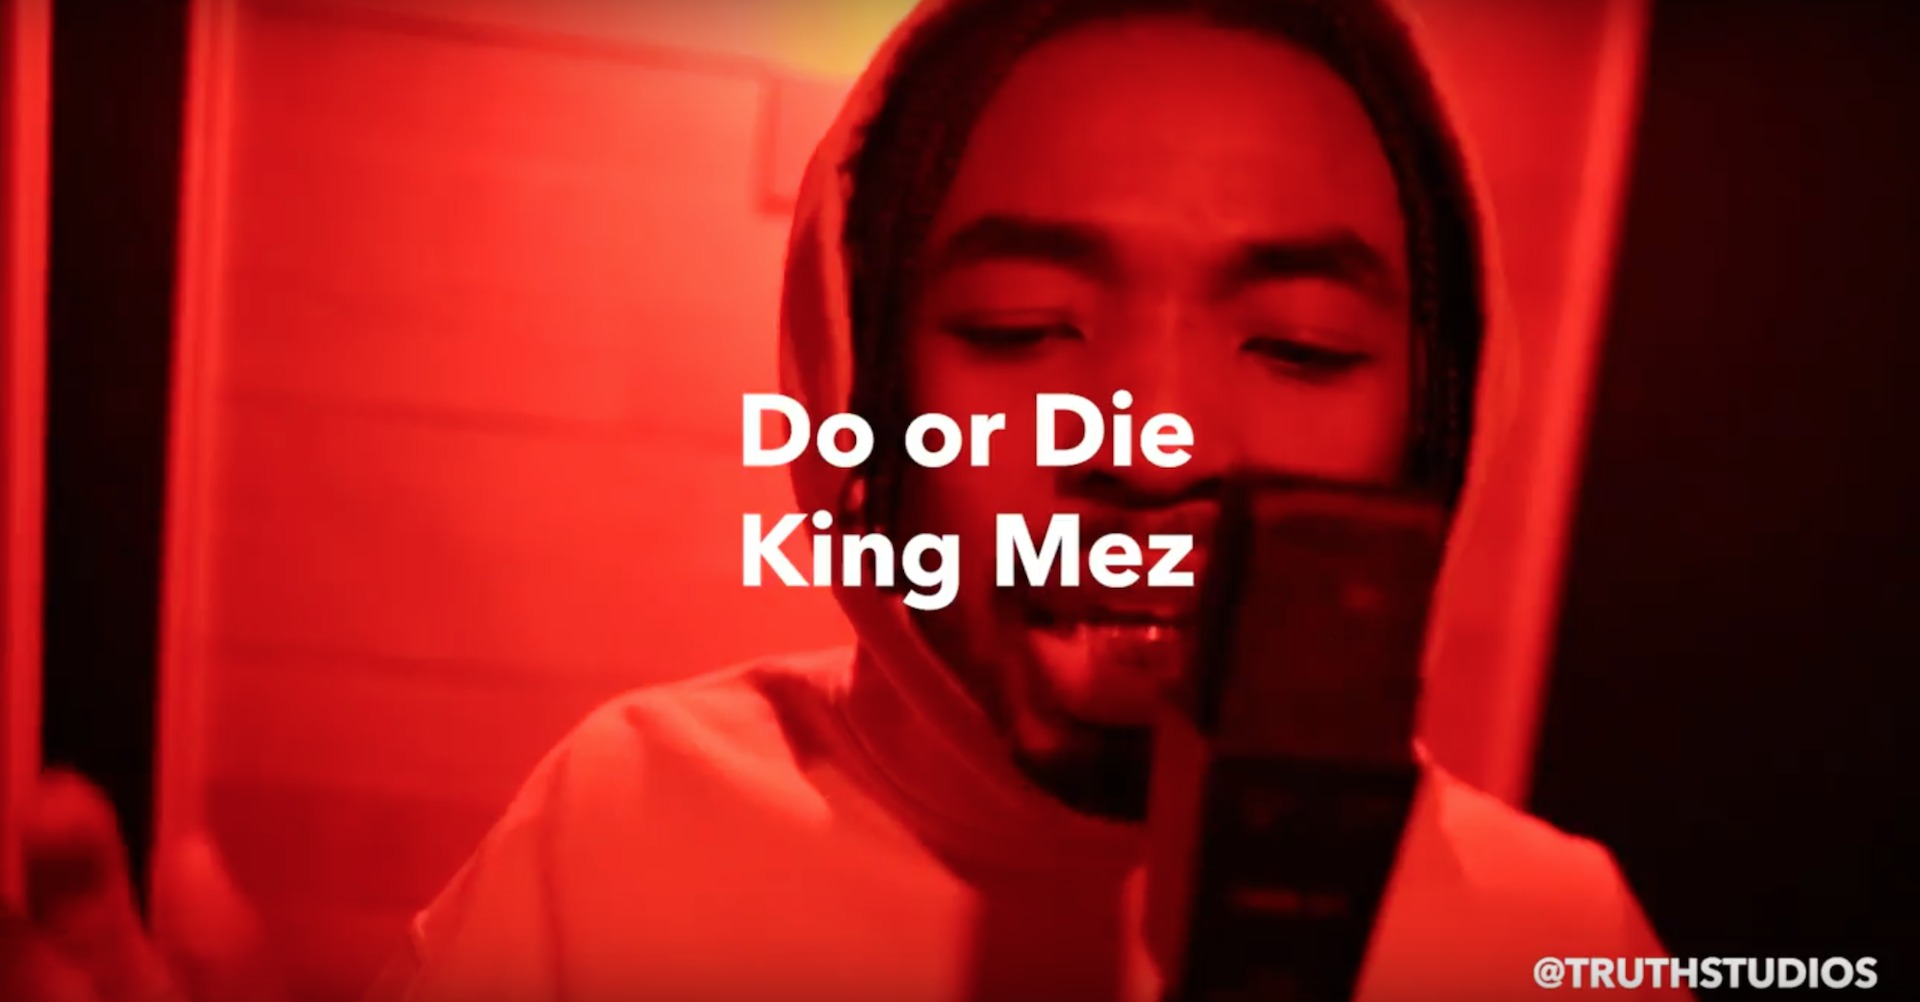 King Mez - Do or Die (Live at Truth Studios)